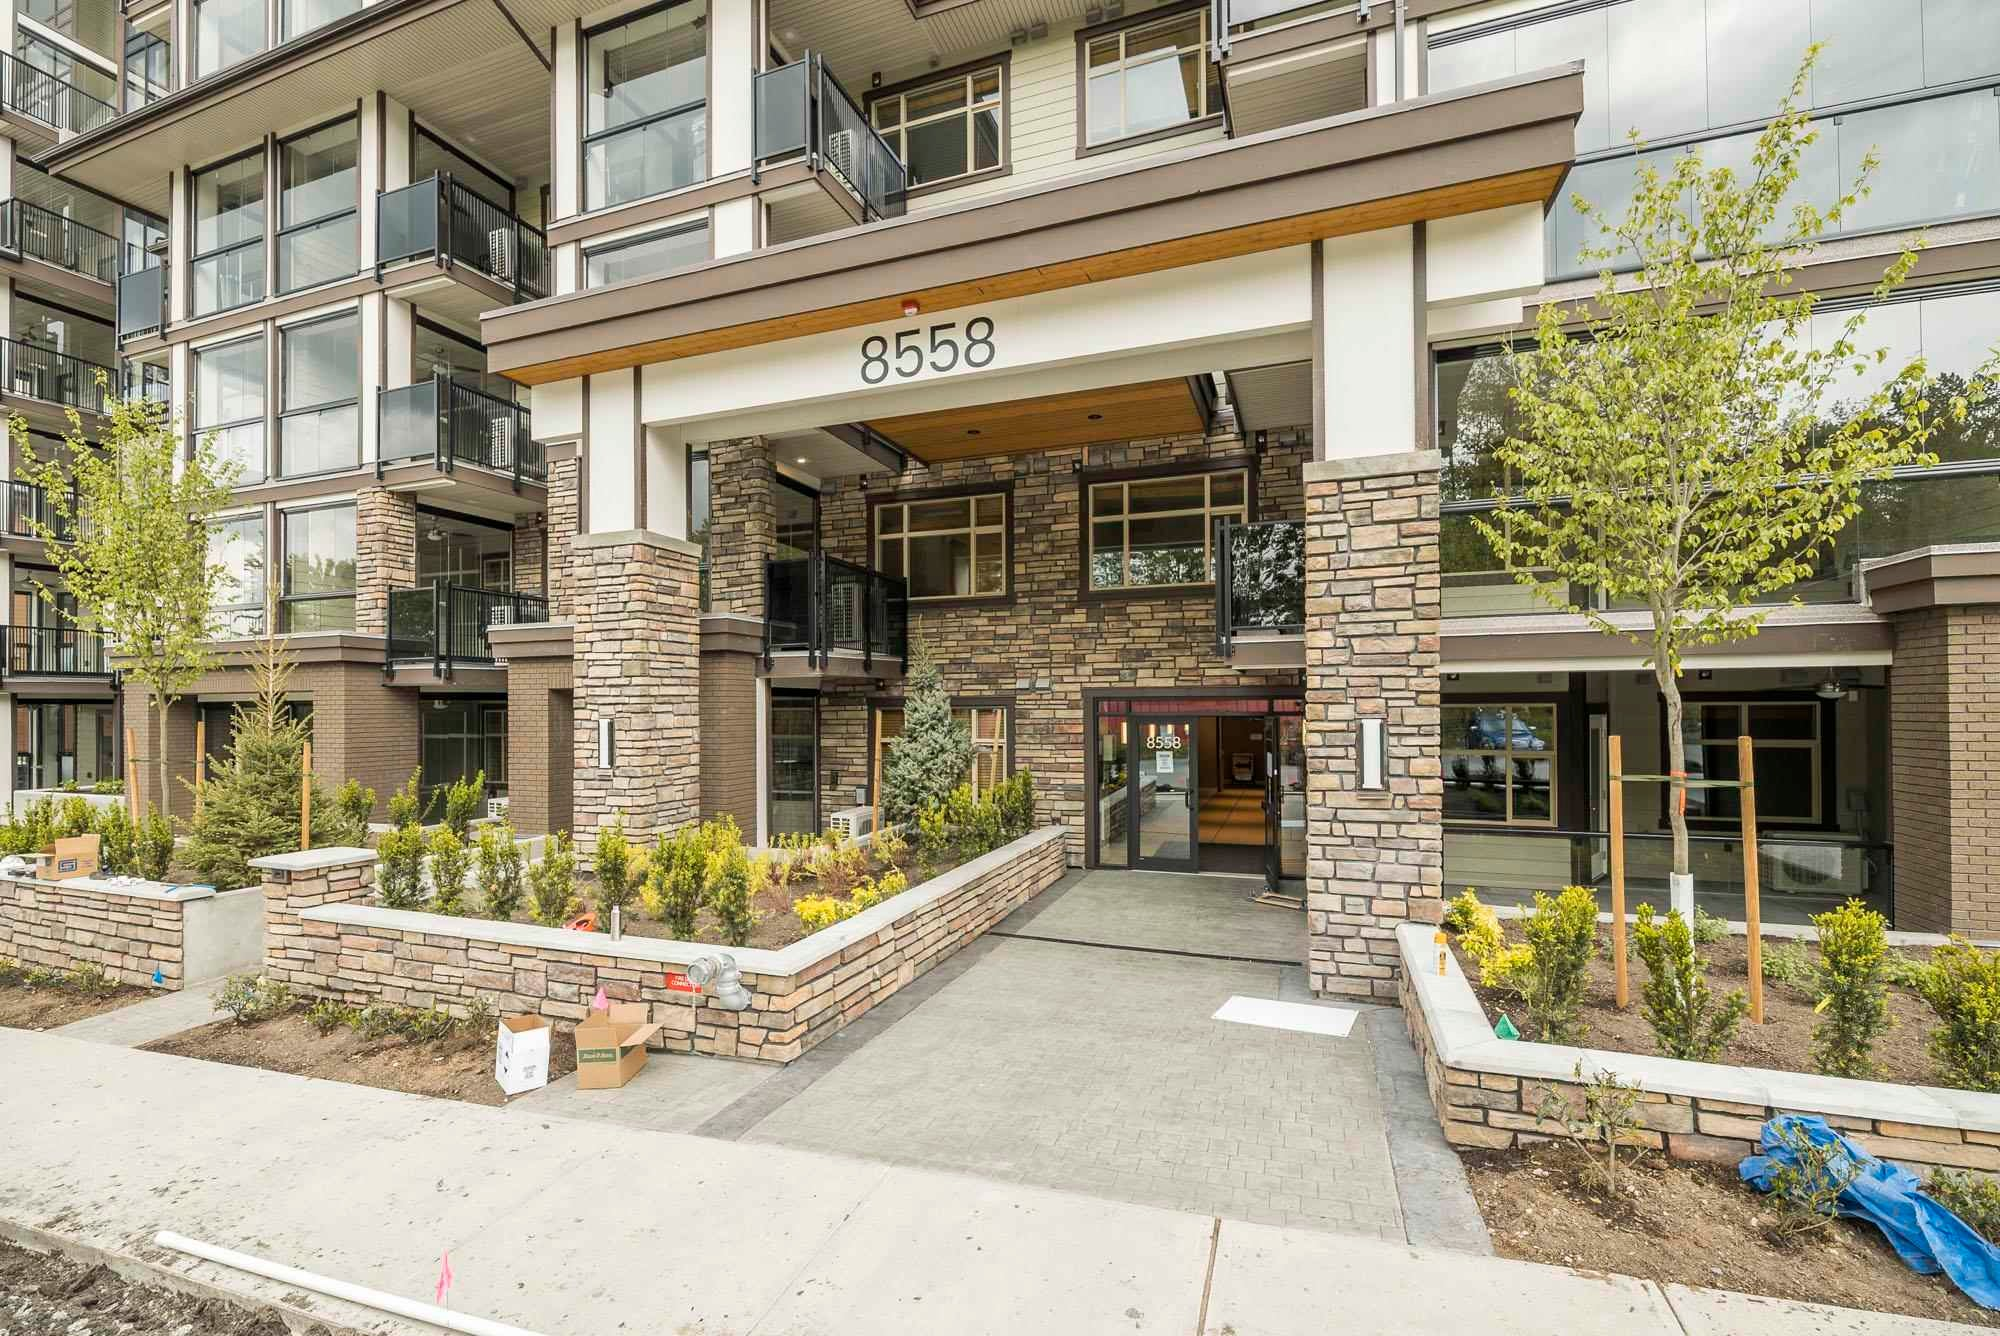 303 8561 203A STREET - Willoughby Heights Apartment/Condo for sale, 3 Bedrooms (R2594215) - #1